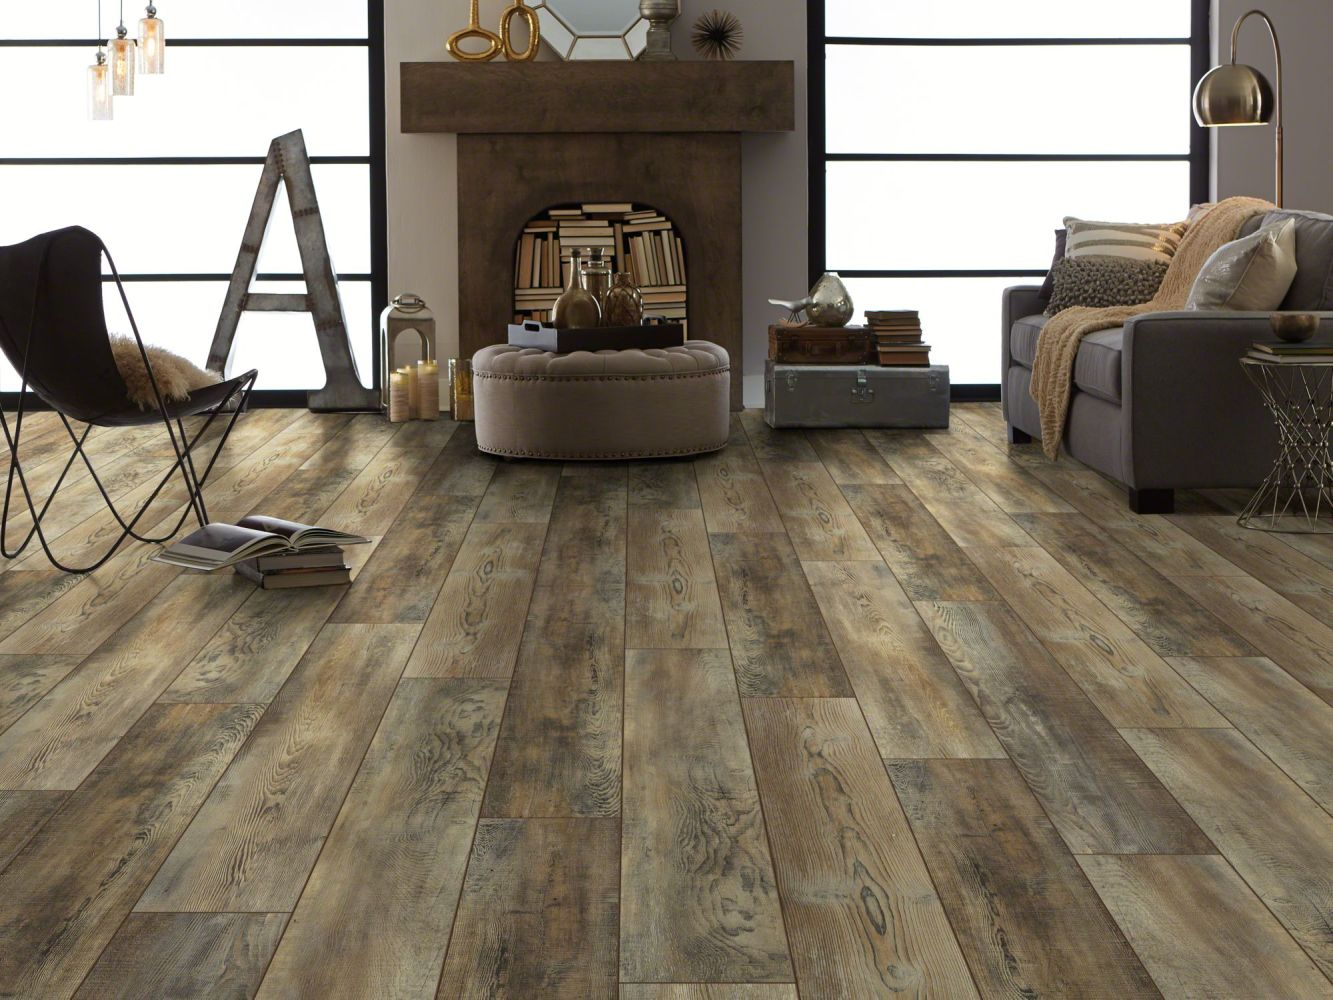 Shaw Floors Vinyl Residential Pantheon HD Plus Saggio 00159_2001V